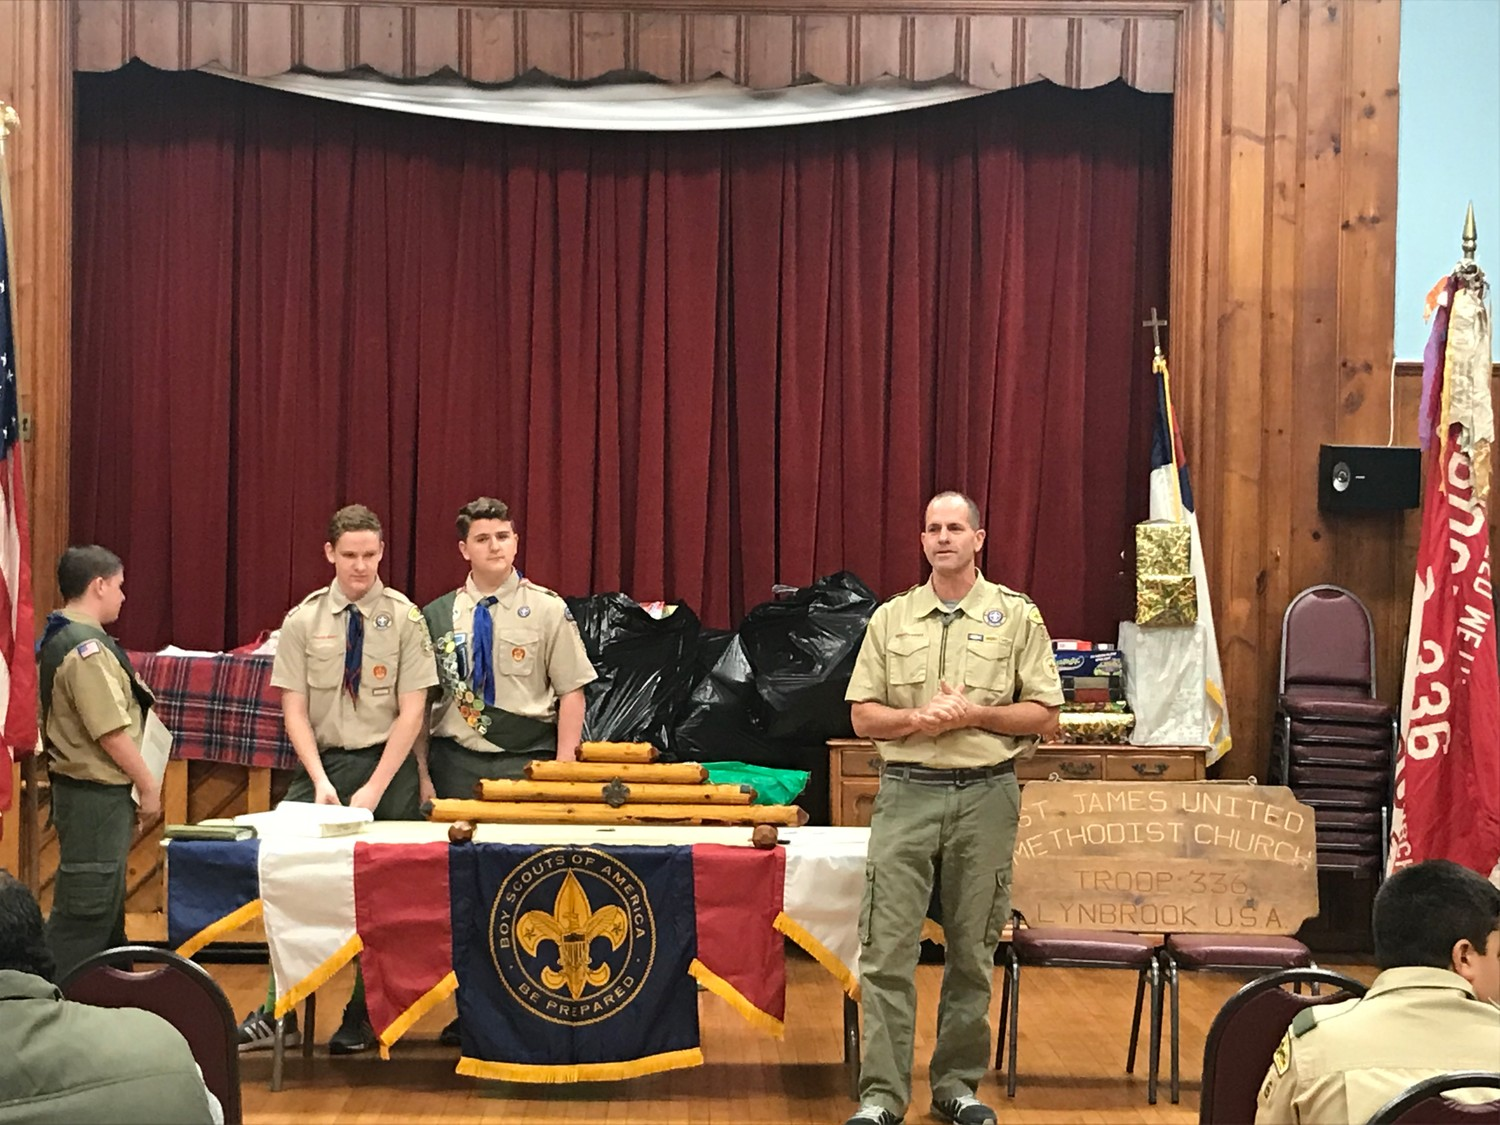 Steve Maroney said he didn't intend to become Troop 336's scoutmaster, but he cherishes the role. Above, he handed out badges to scouts at the quarterly Court of Honor ceremony at Saint James United Methodist Church in Lynbrook on Dec. 18.